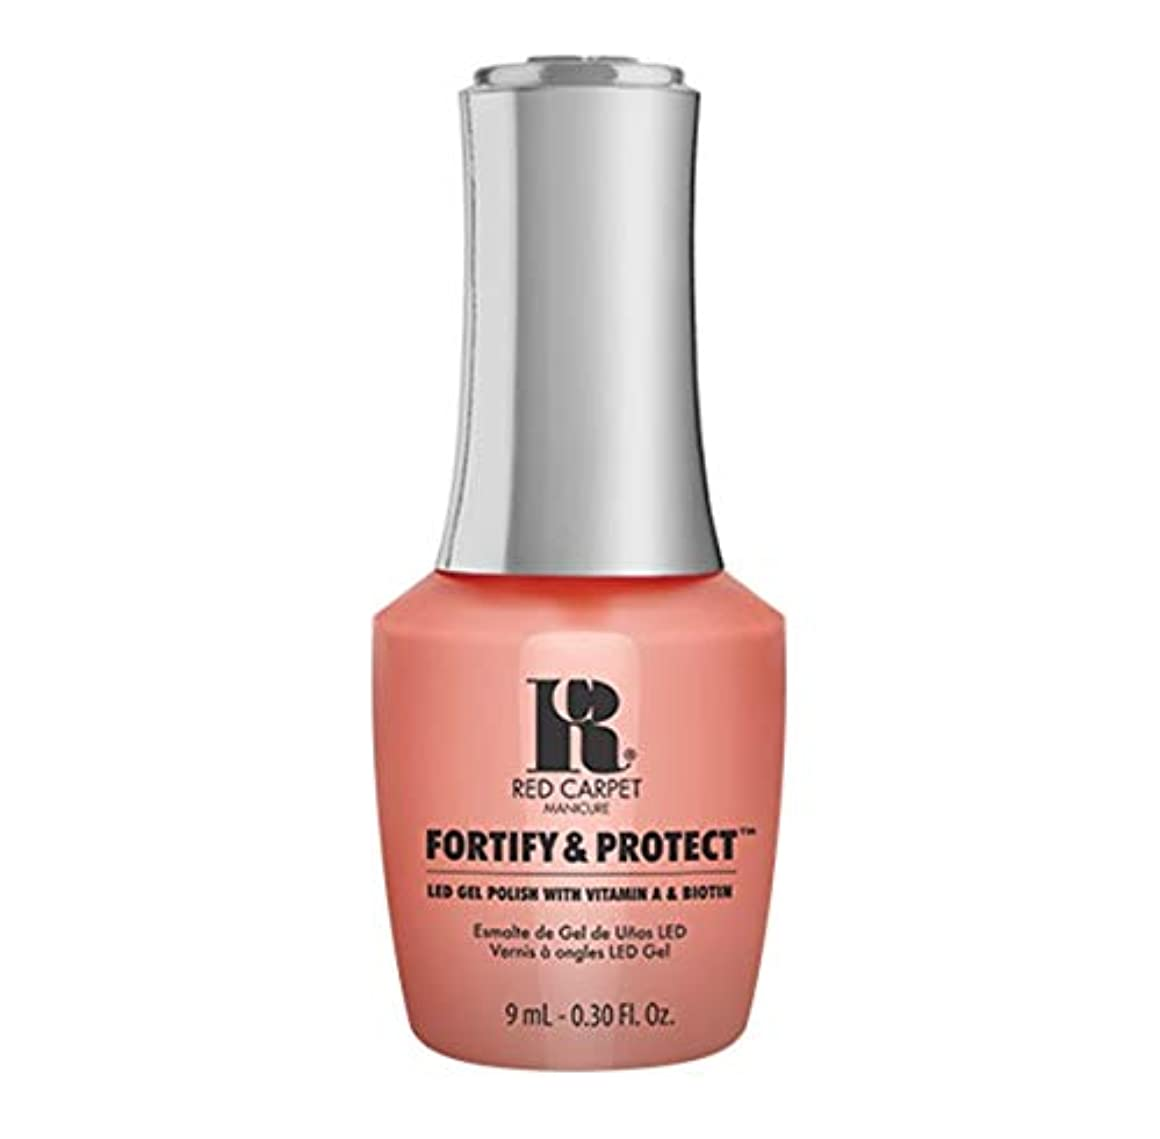 修正取り扱い名目上のRed Carpet Manicure - Fortify & Protect - Sunset Cruising - 9ml / 0.30oz